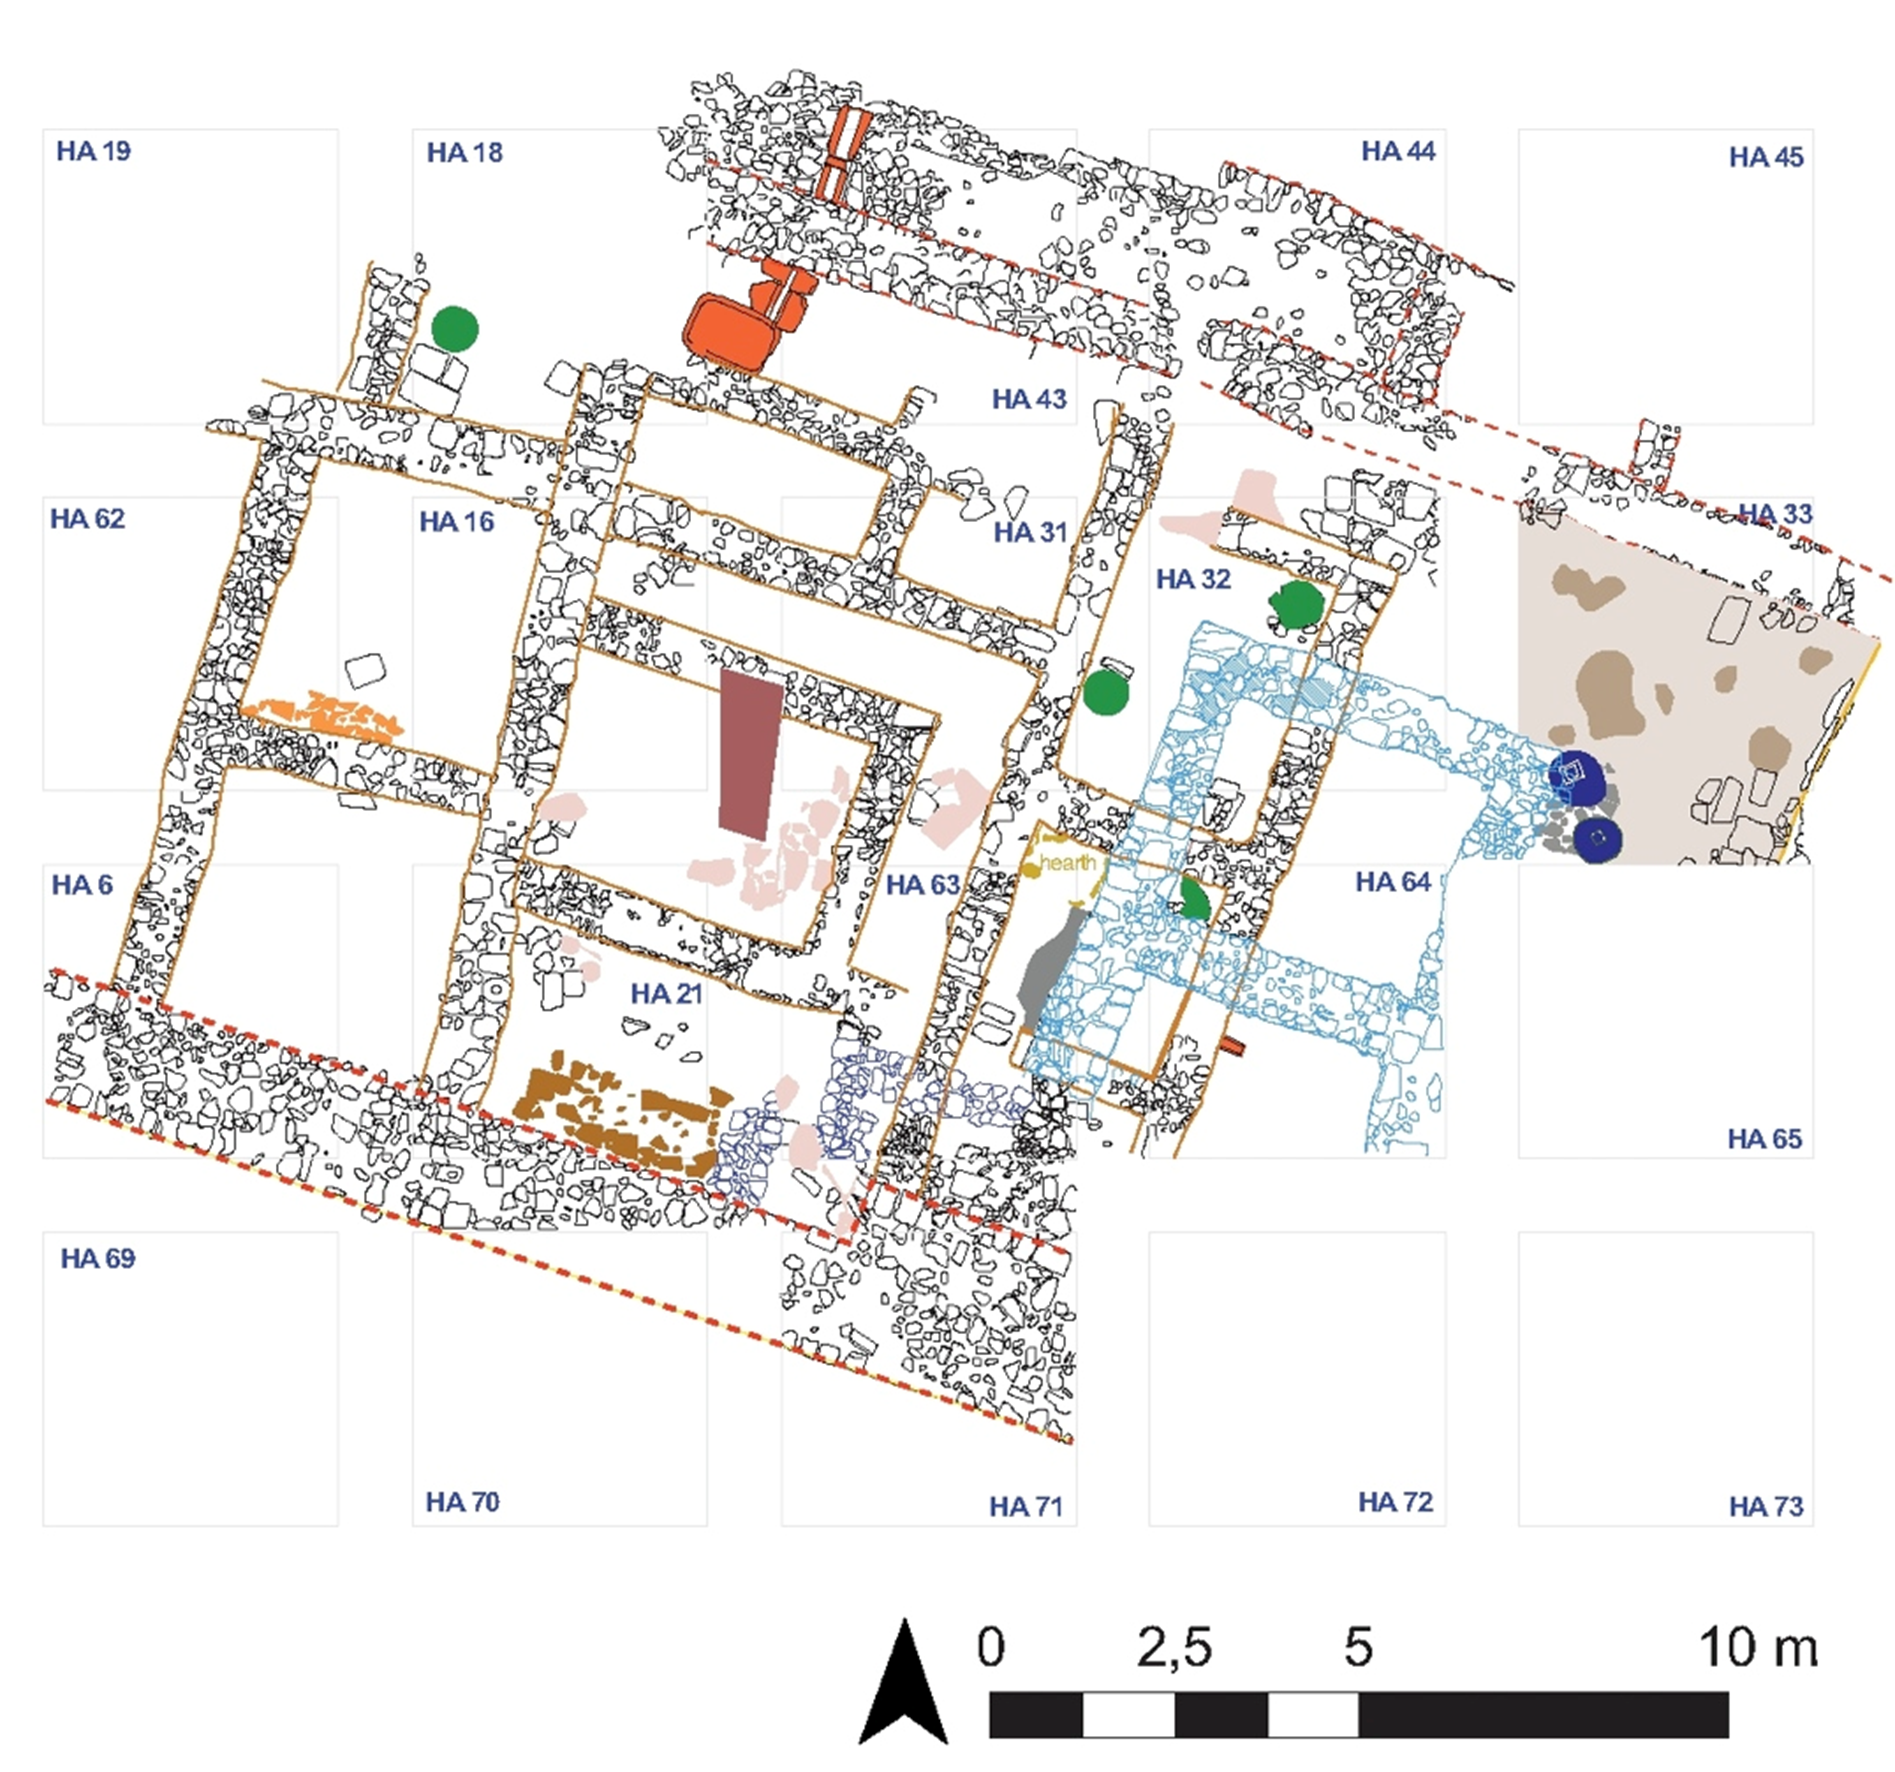 Fig. 18 - Plan of the Western complex 2015 excavations